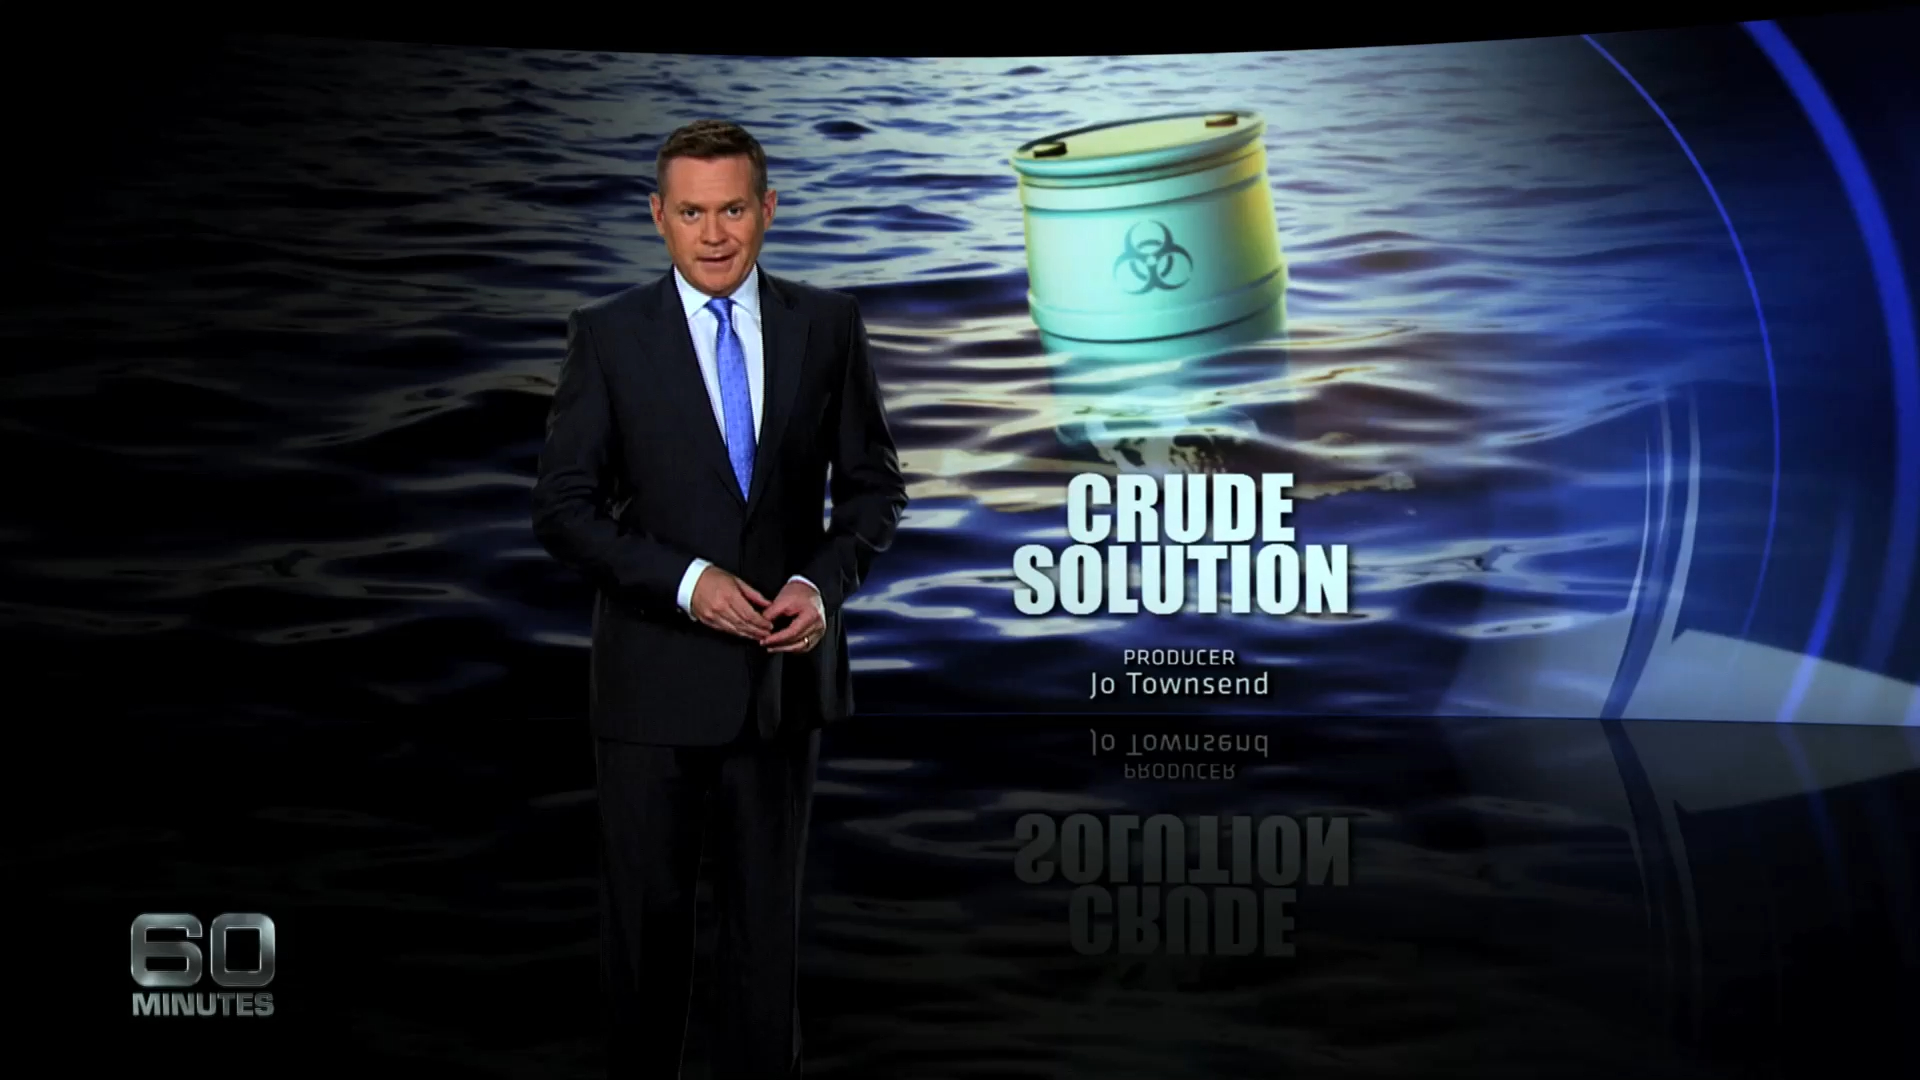 Crude Solution (2013)